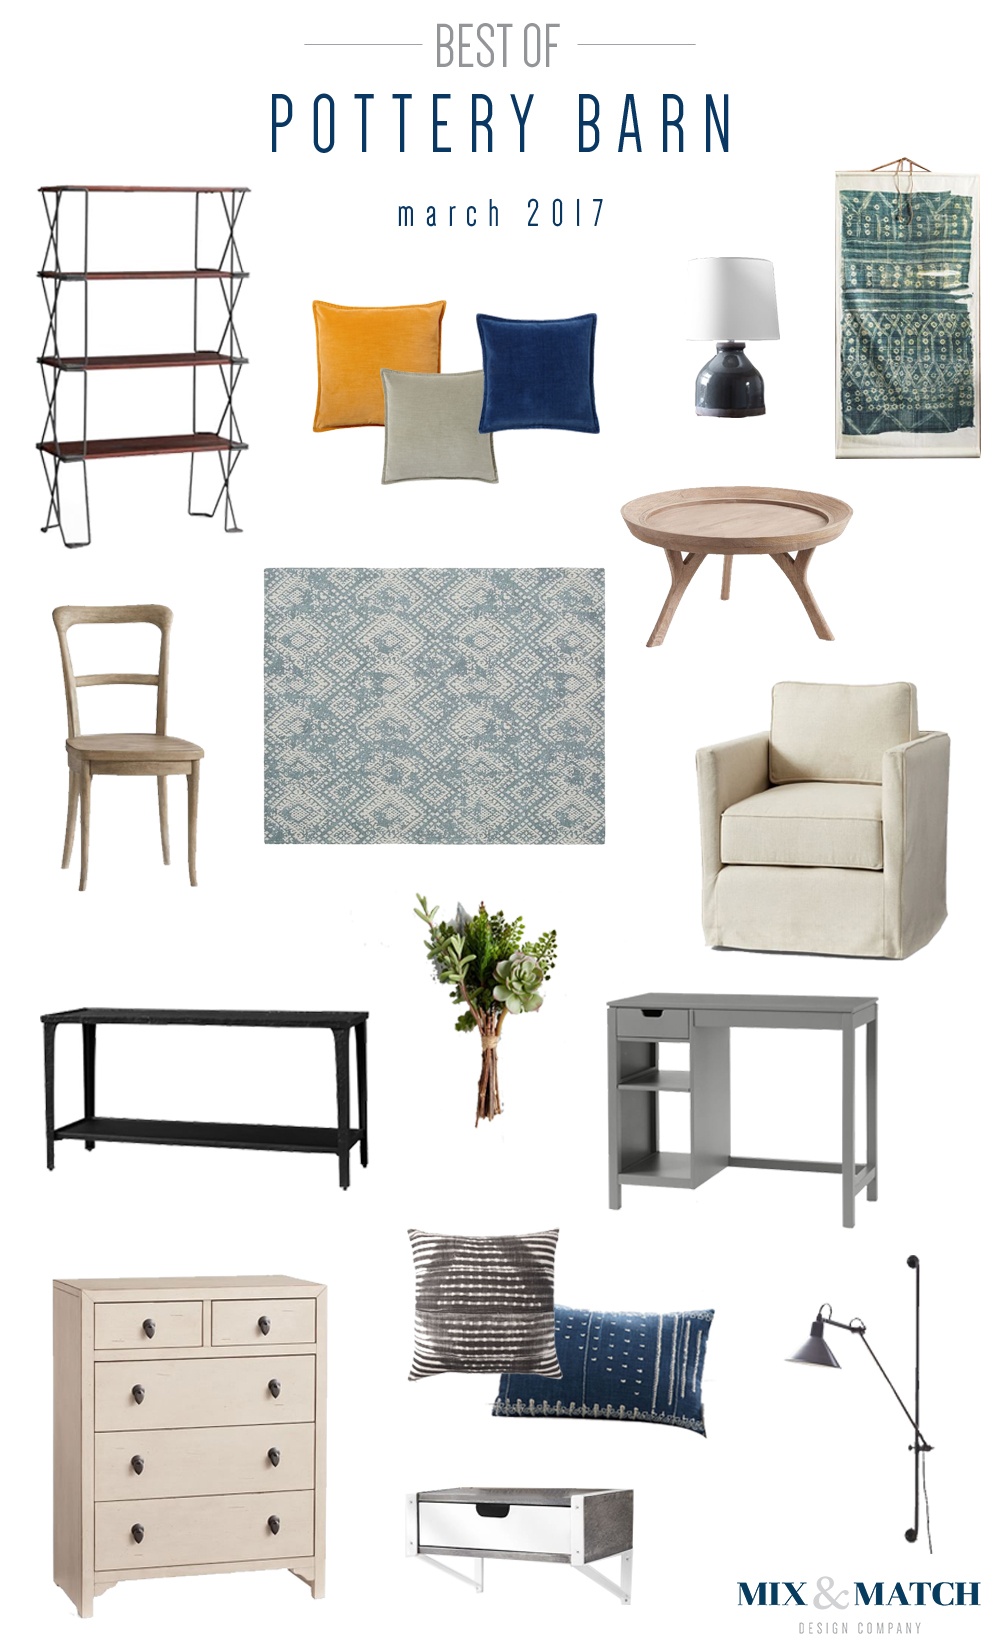 A curated round up of the very best items from Pottery Barn. (March 2017)